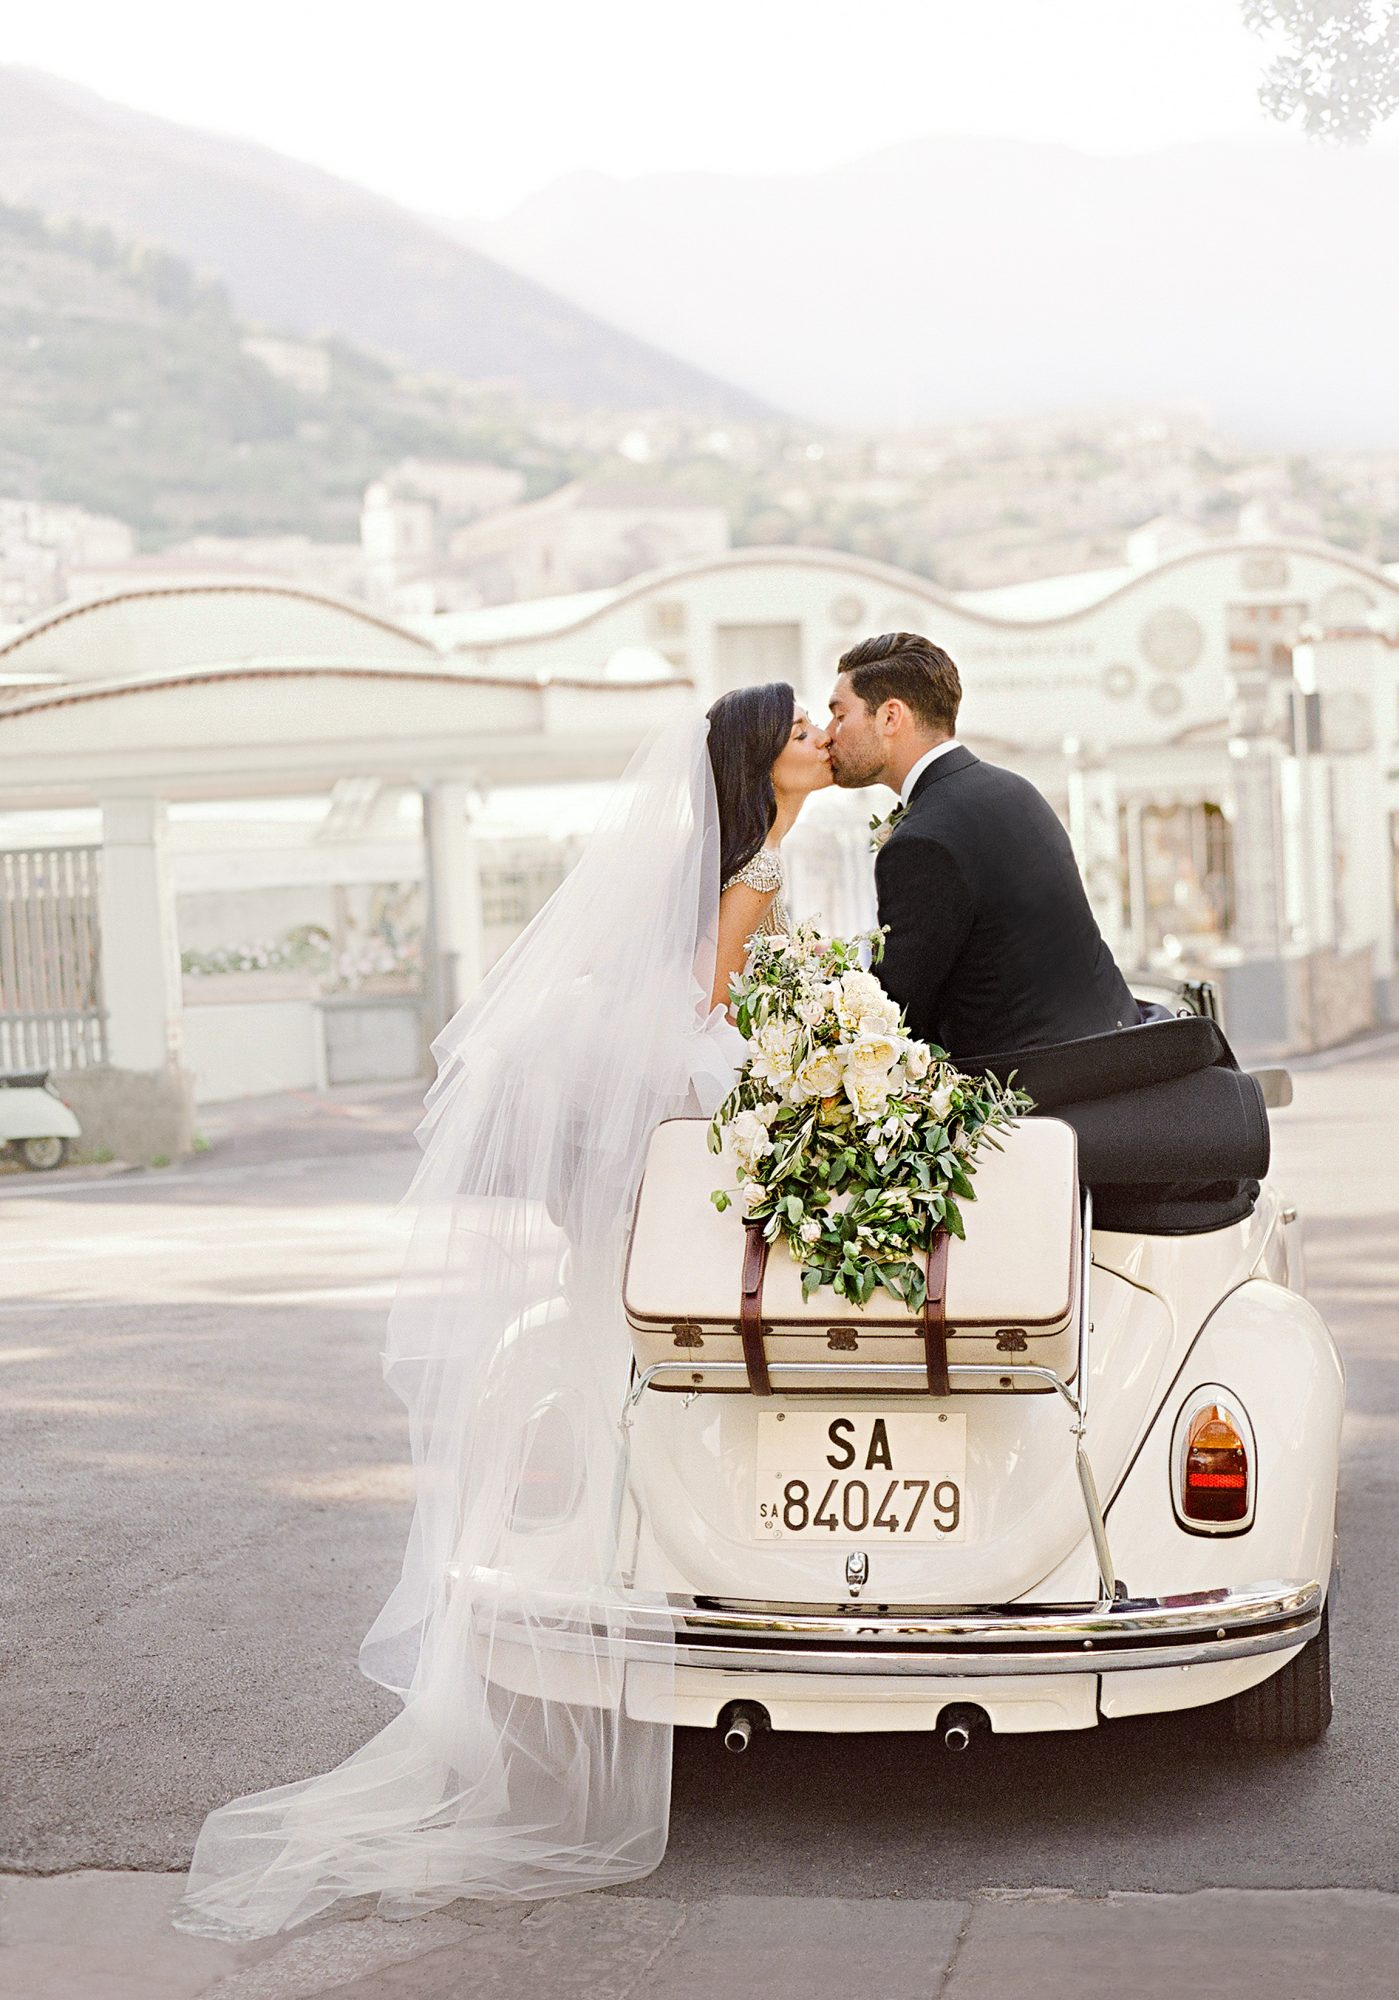 This Couple's Dreamy Italian Destination Wedding Could Have Been from a  Fairy Tale | Martha Stewart